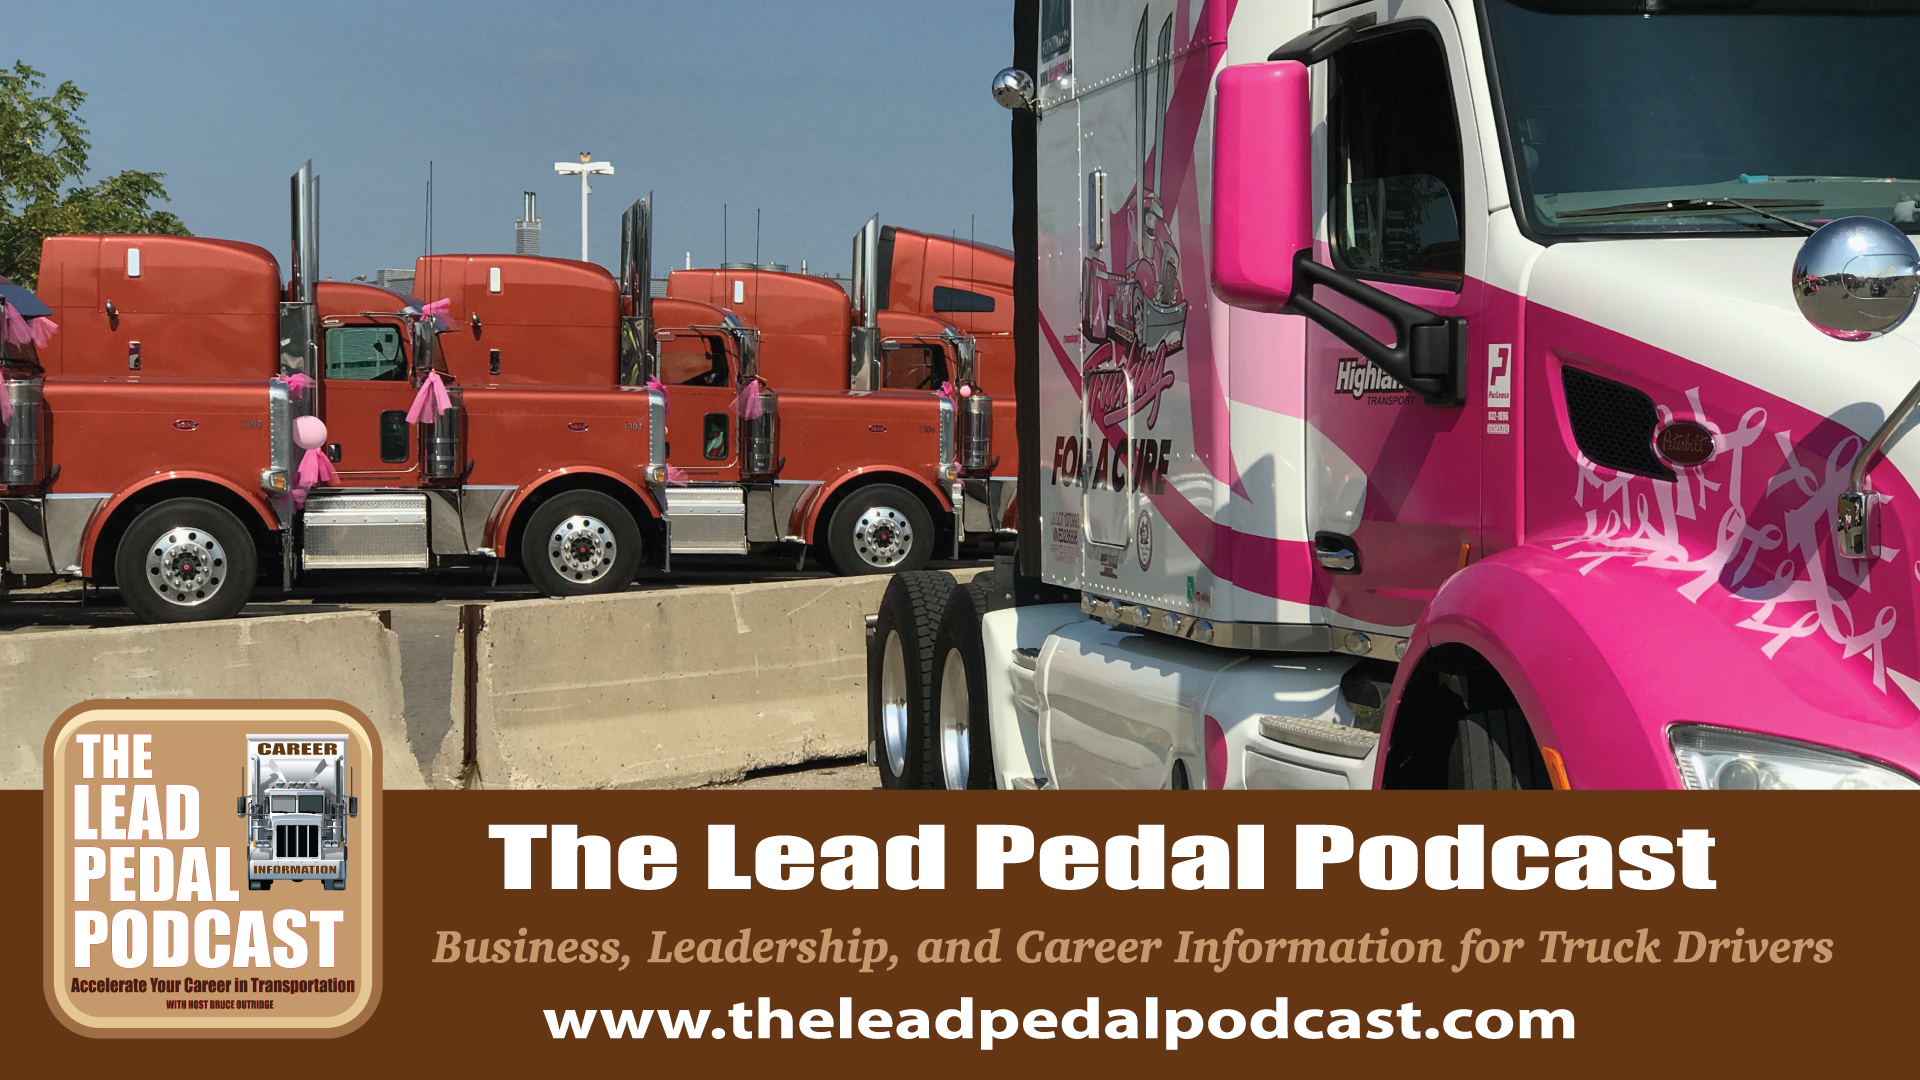 Career Trucking The Lead Pedal Podcast For Truck Drivers The Link Between